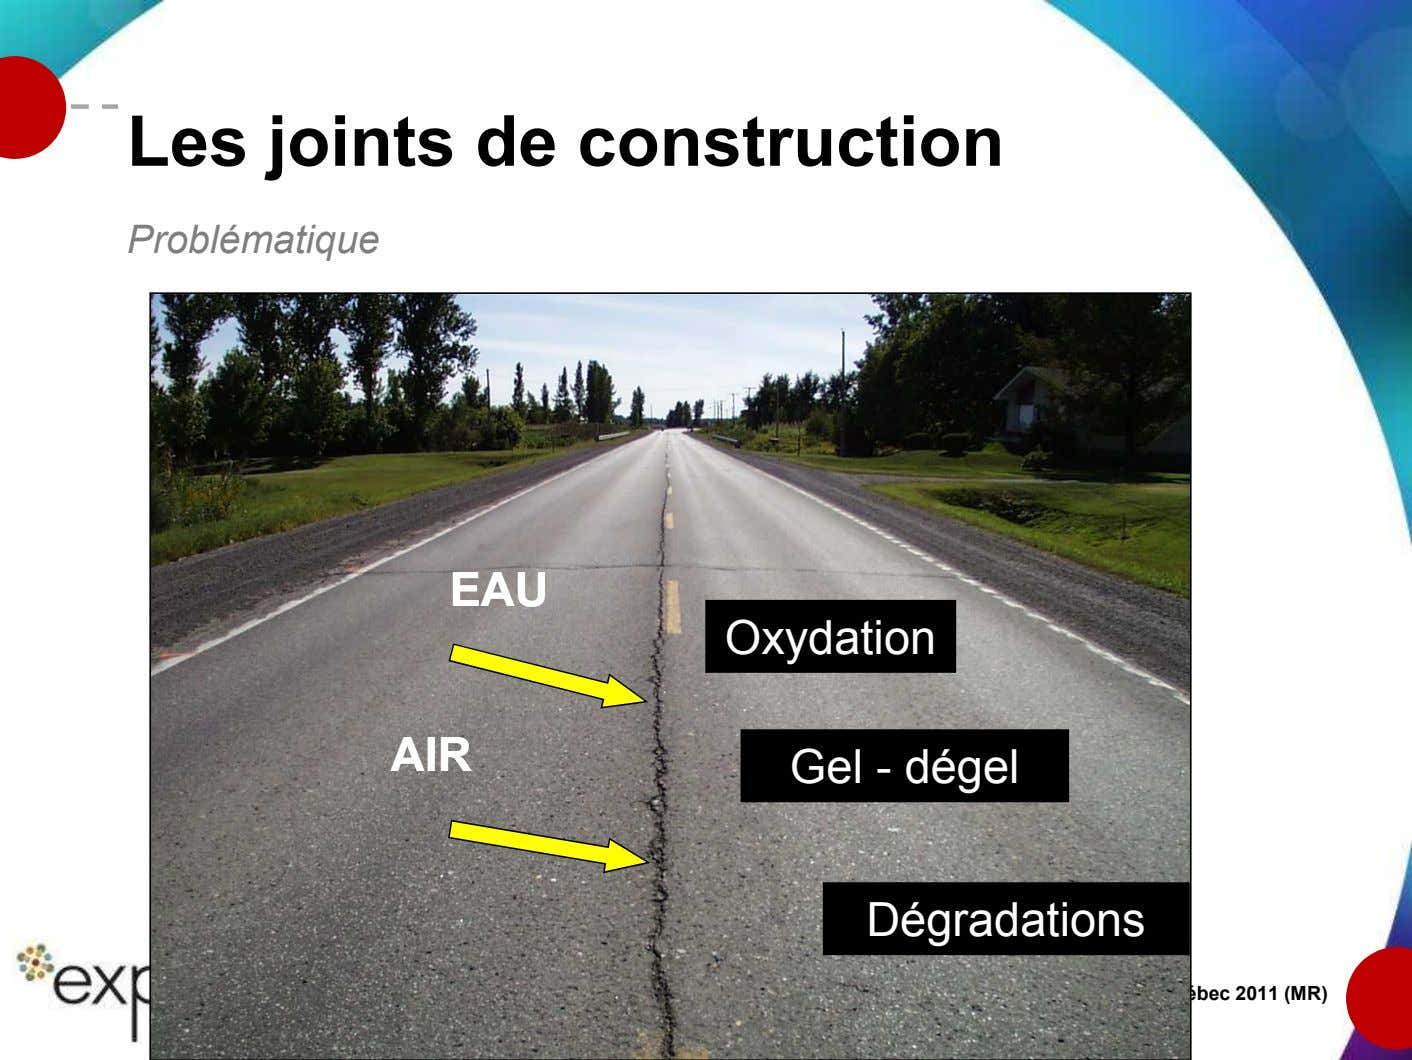 Les joints de construction Problématique EAUEAU Oxydation AIRAIR Gel - dégel Dégradations Formation technique